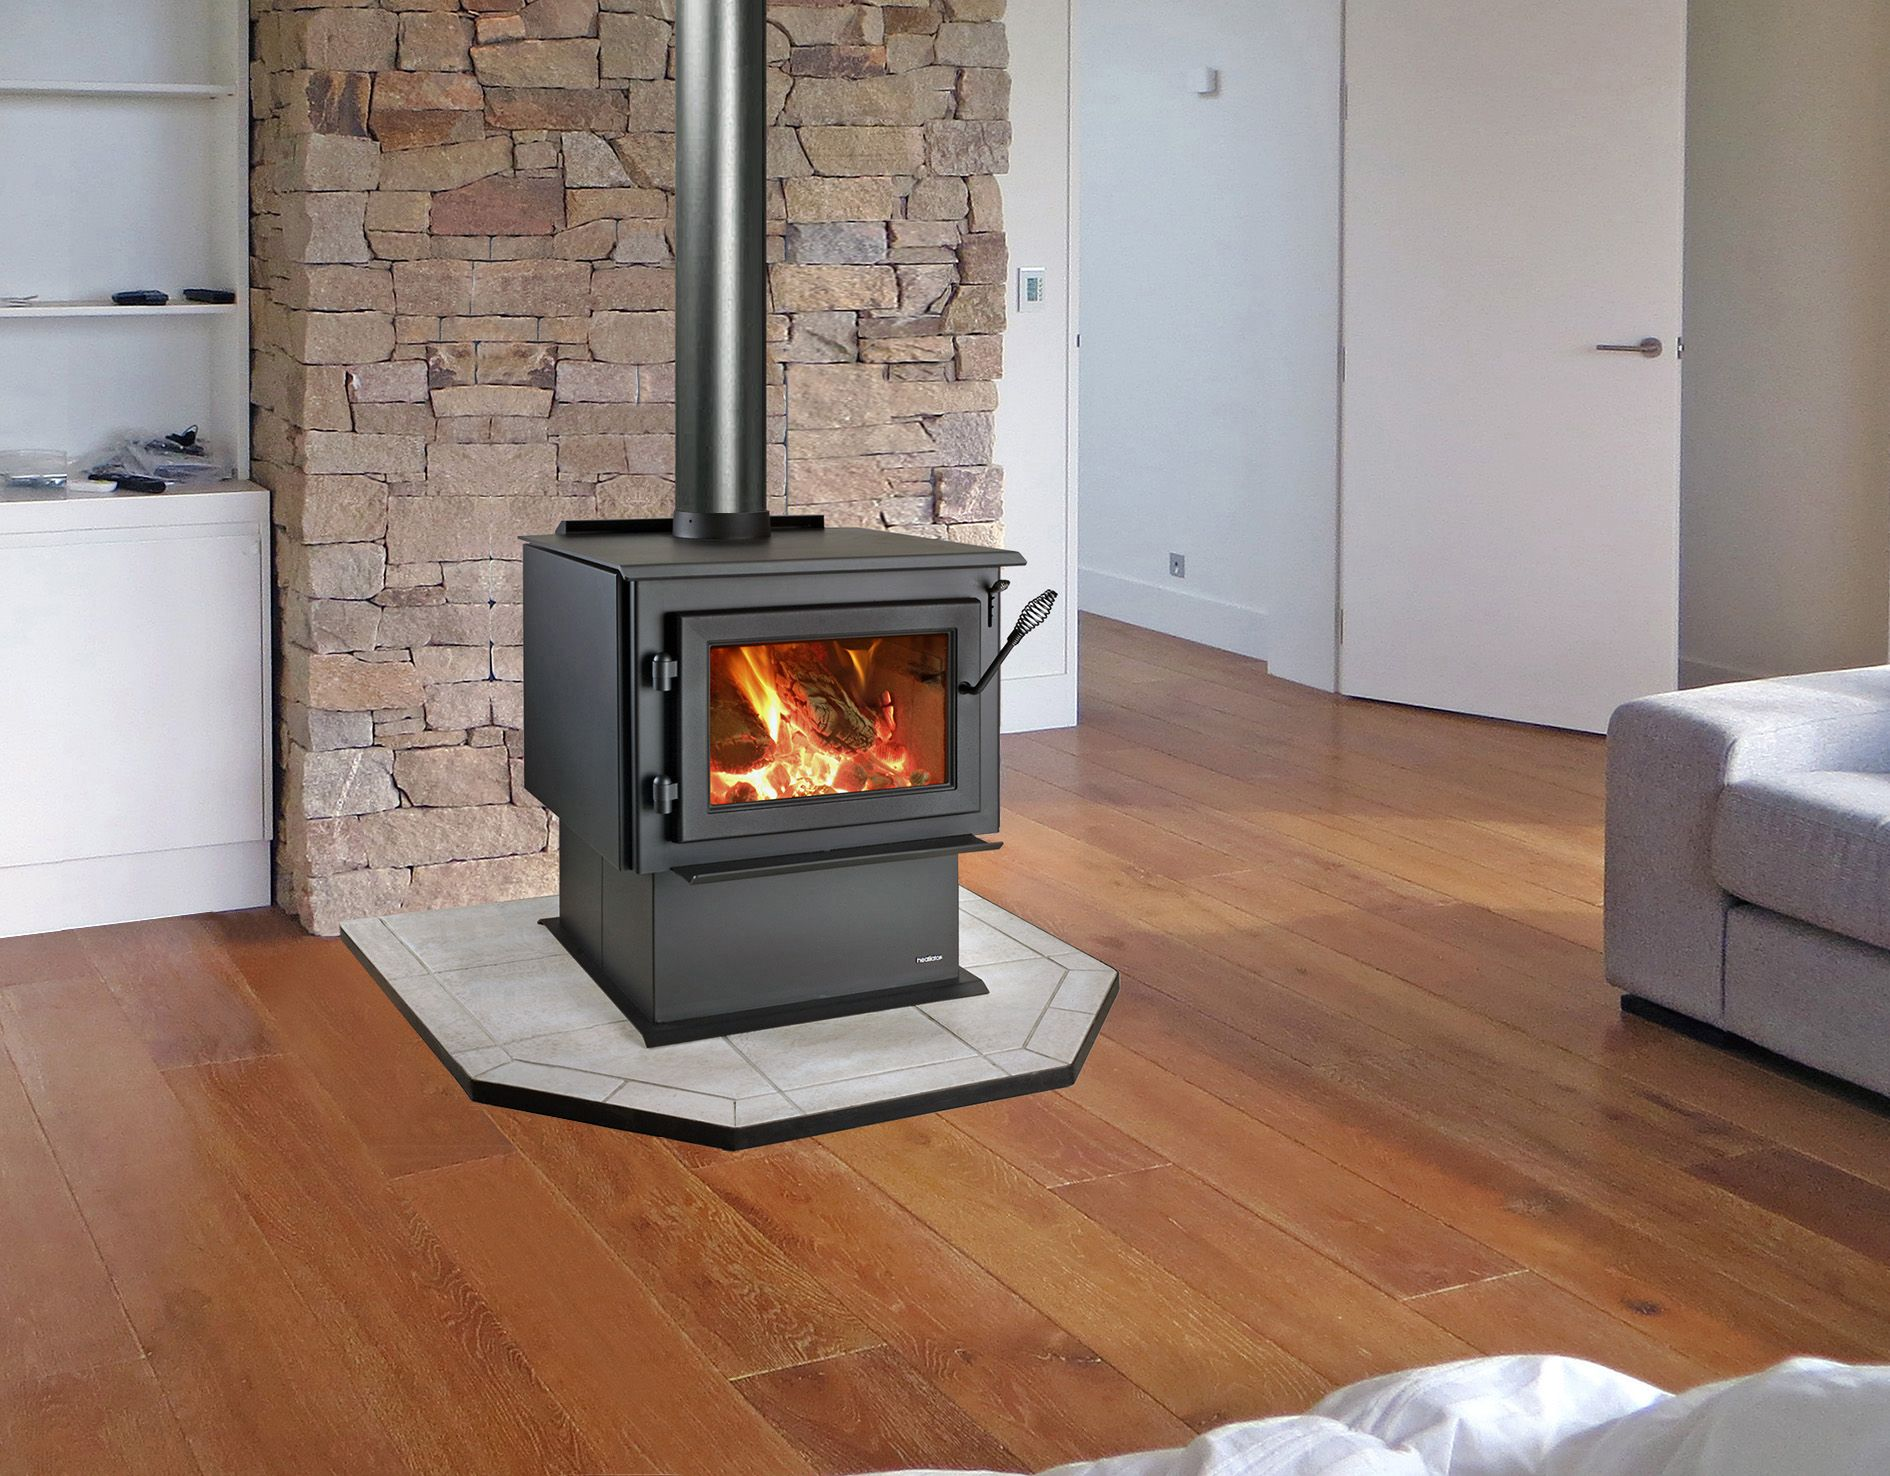 How To Operate A Fireplace The Ws18 Wood Burning Stove Will Deliver Warmth And Comfort To